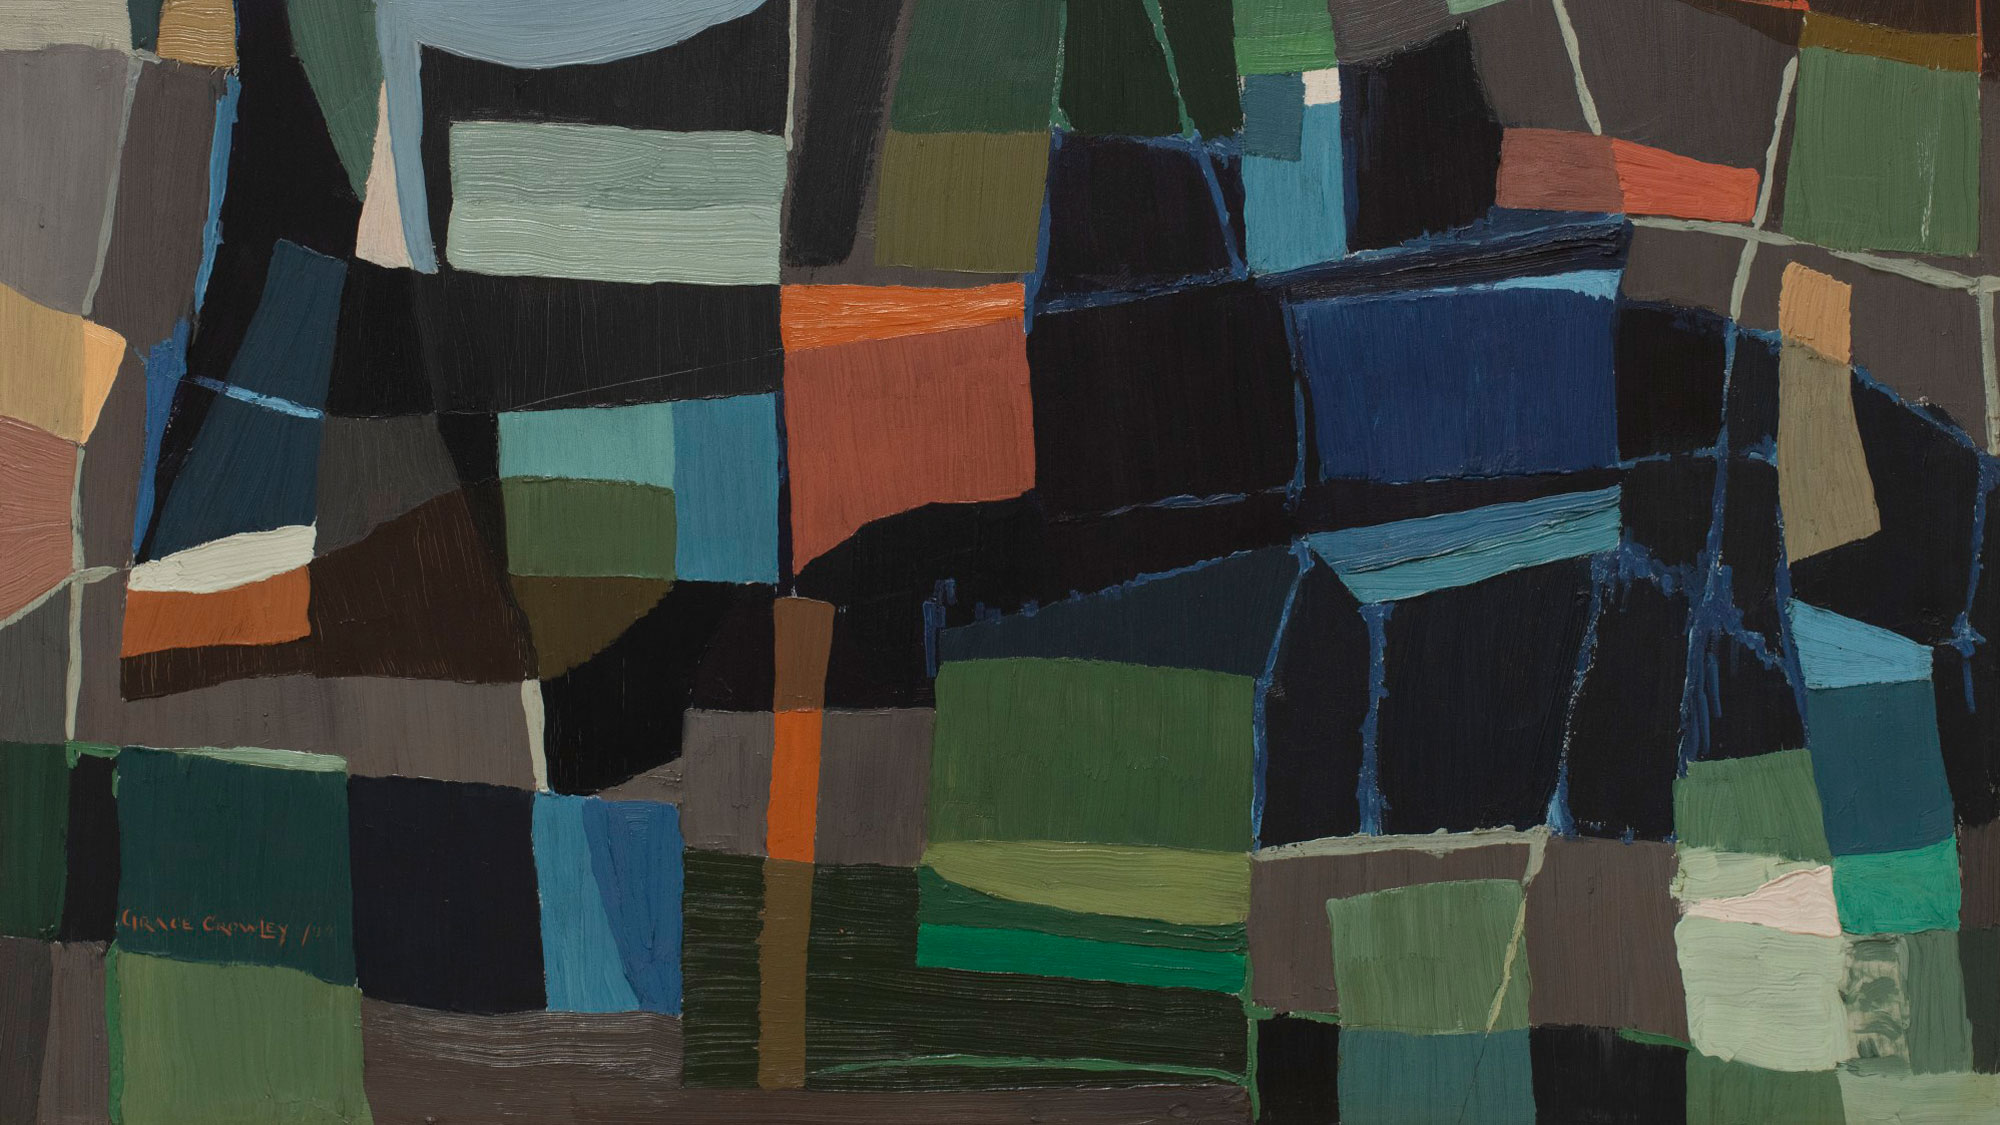 Grace Crowley Abstract Painting 1953